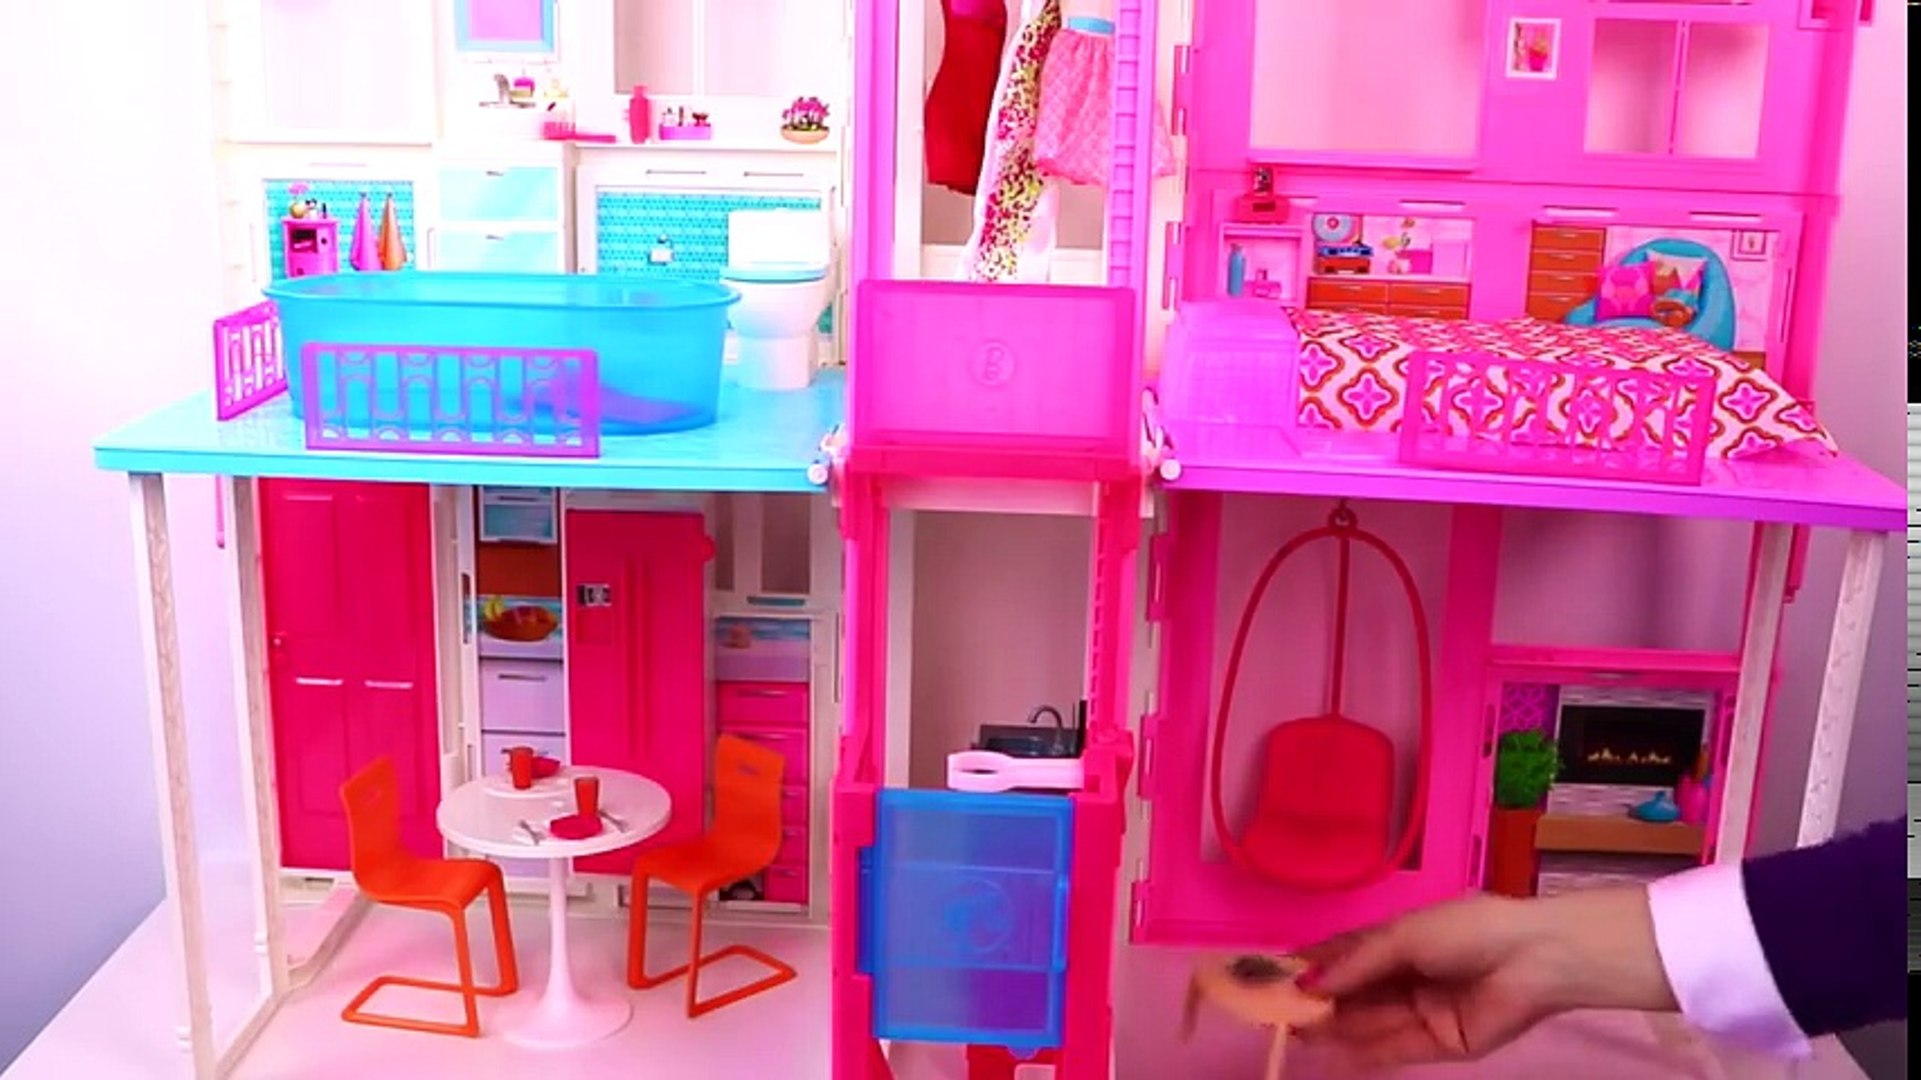 Glam Barbie Doll House Tour Kids How To Set Up Barbie House Mansion Toy Play For Girls Video Dailymotion